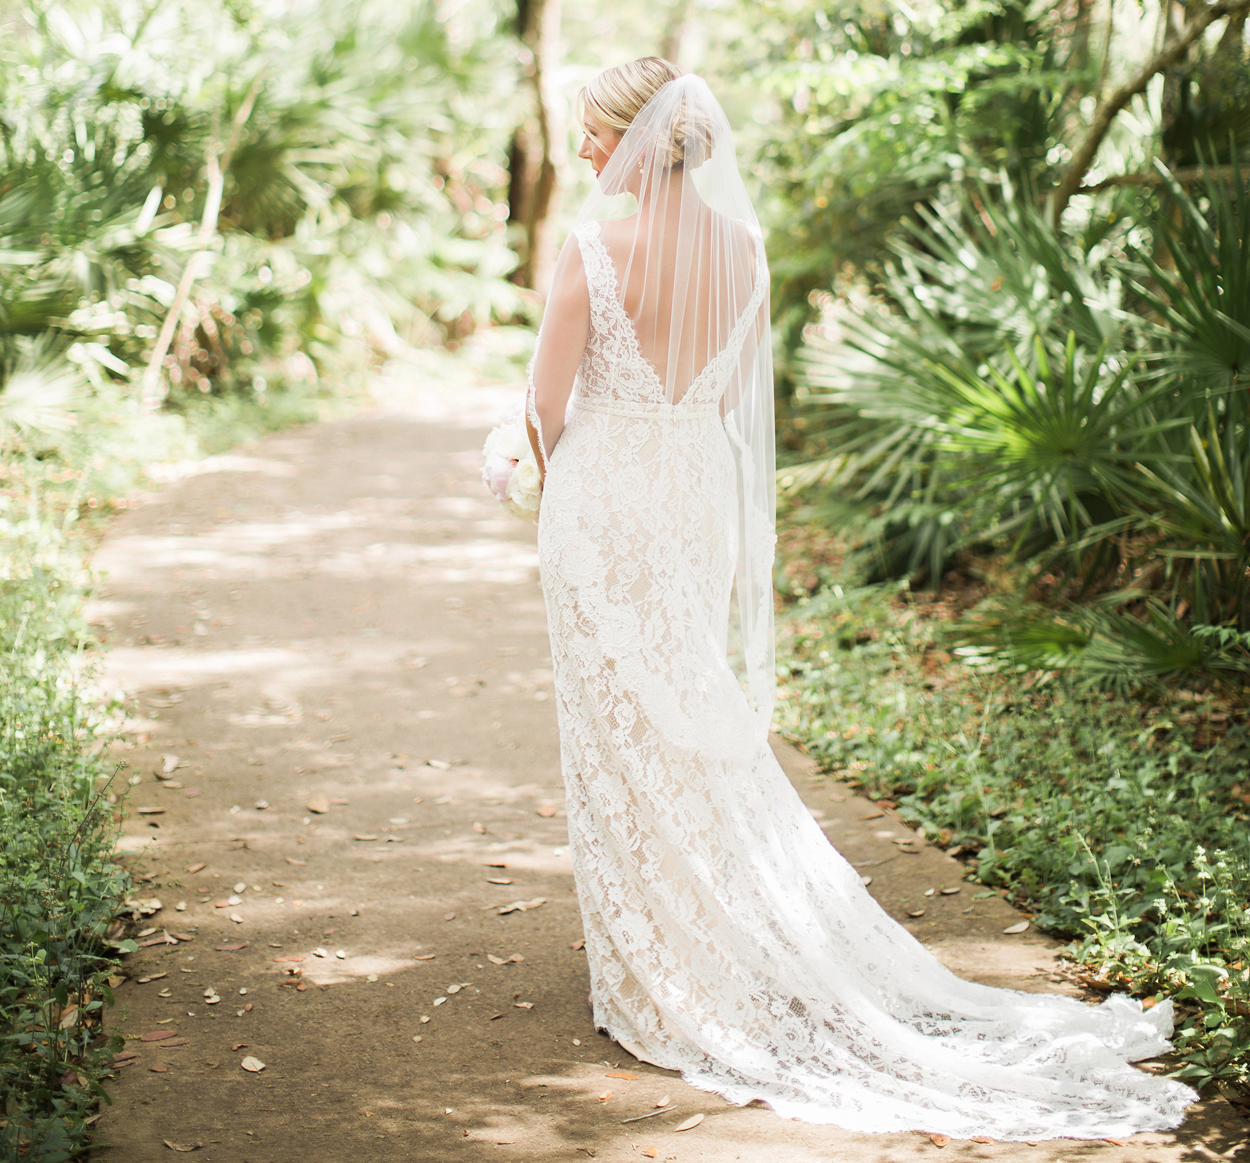 back view of bride in lace gown with deep v back and veil on path in the woods